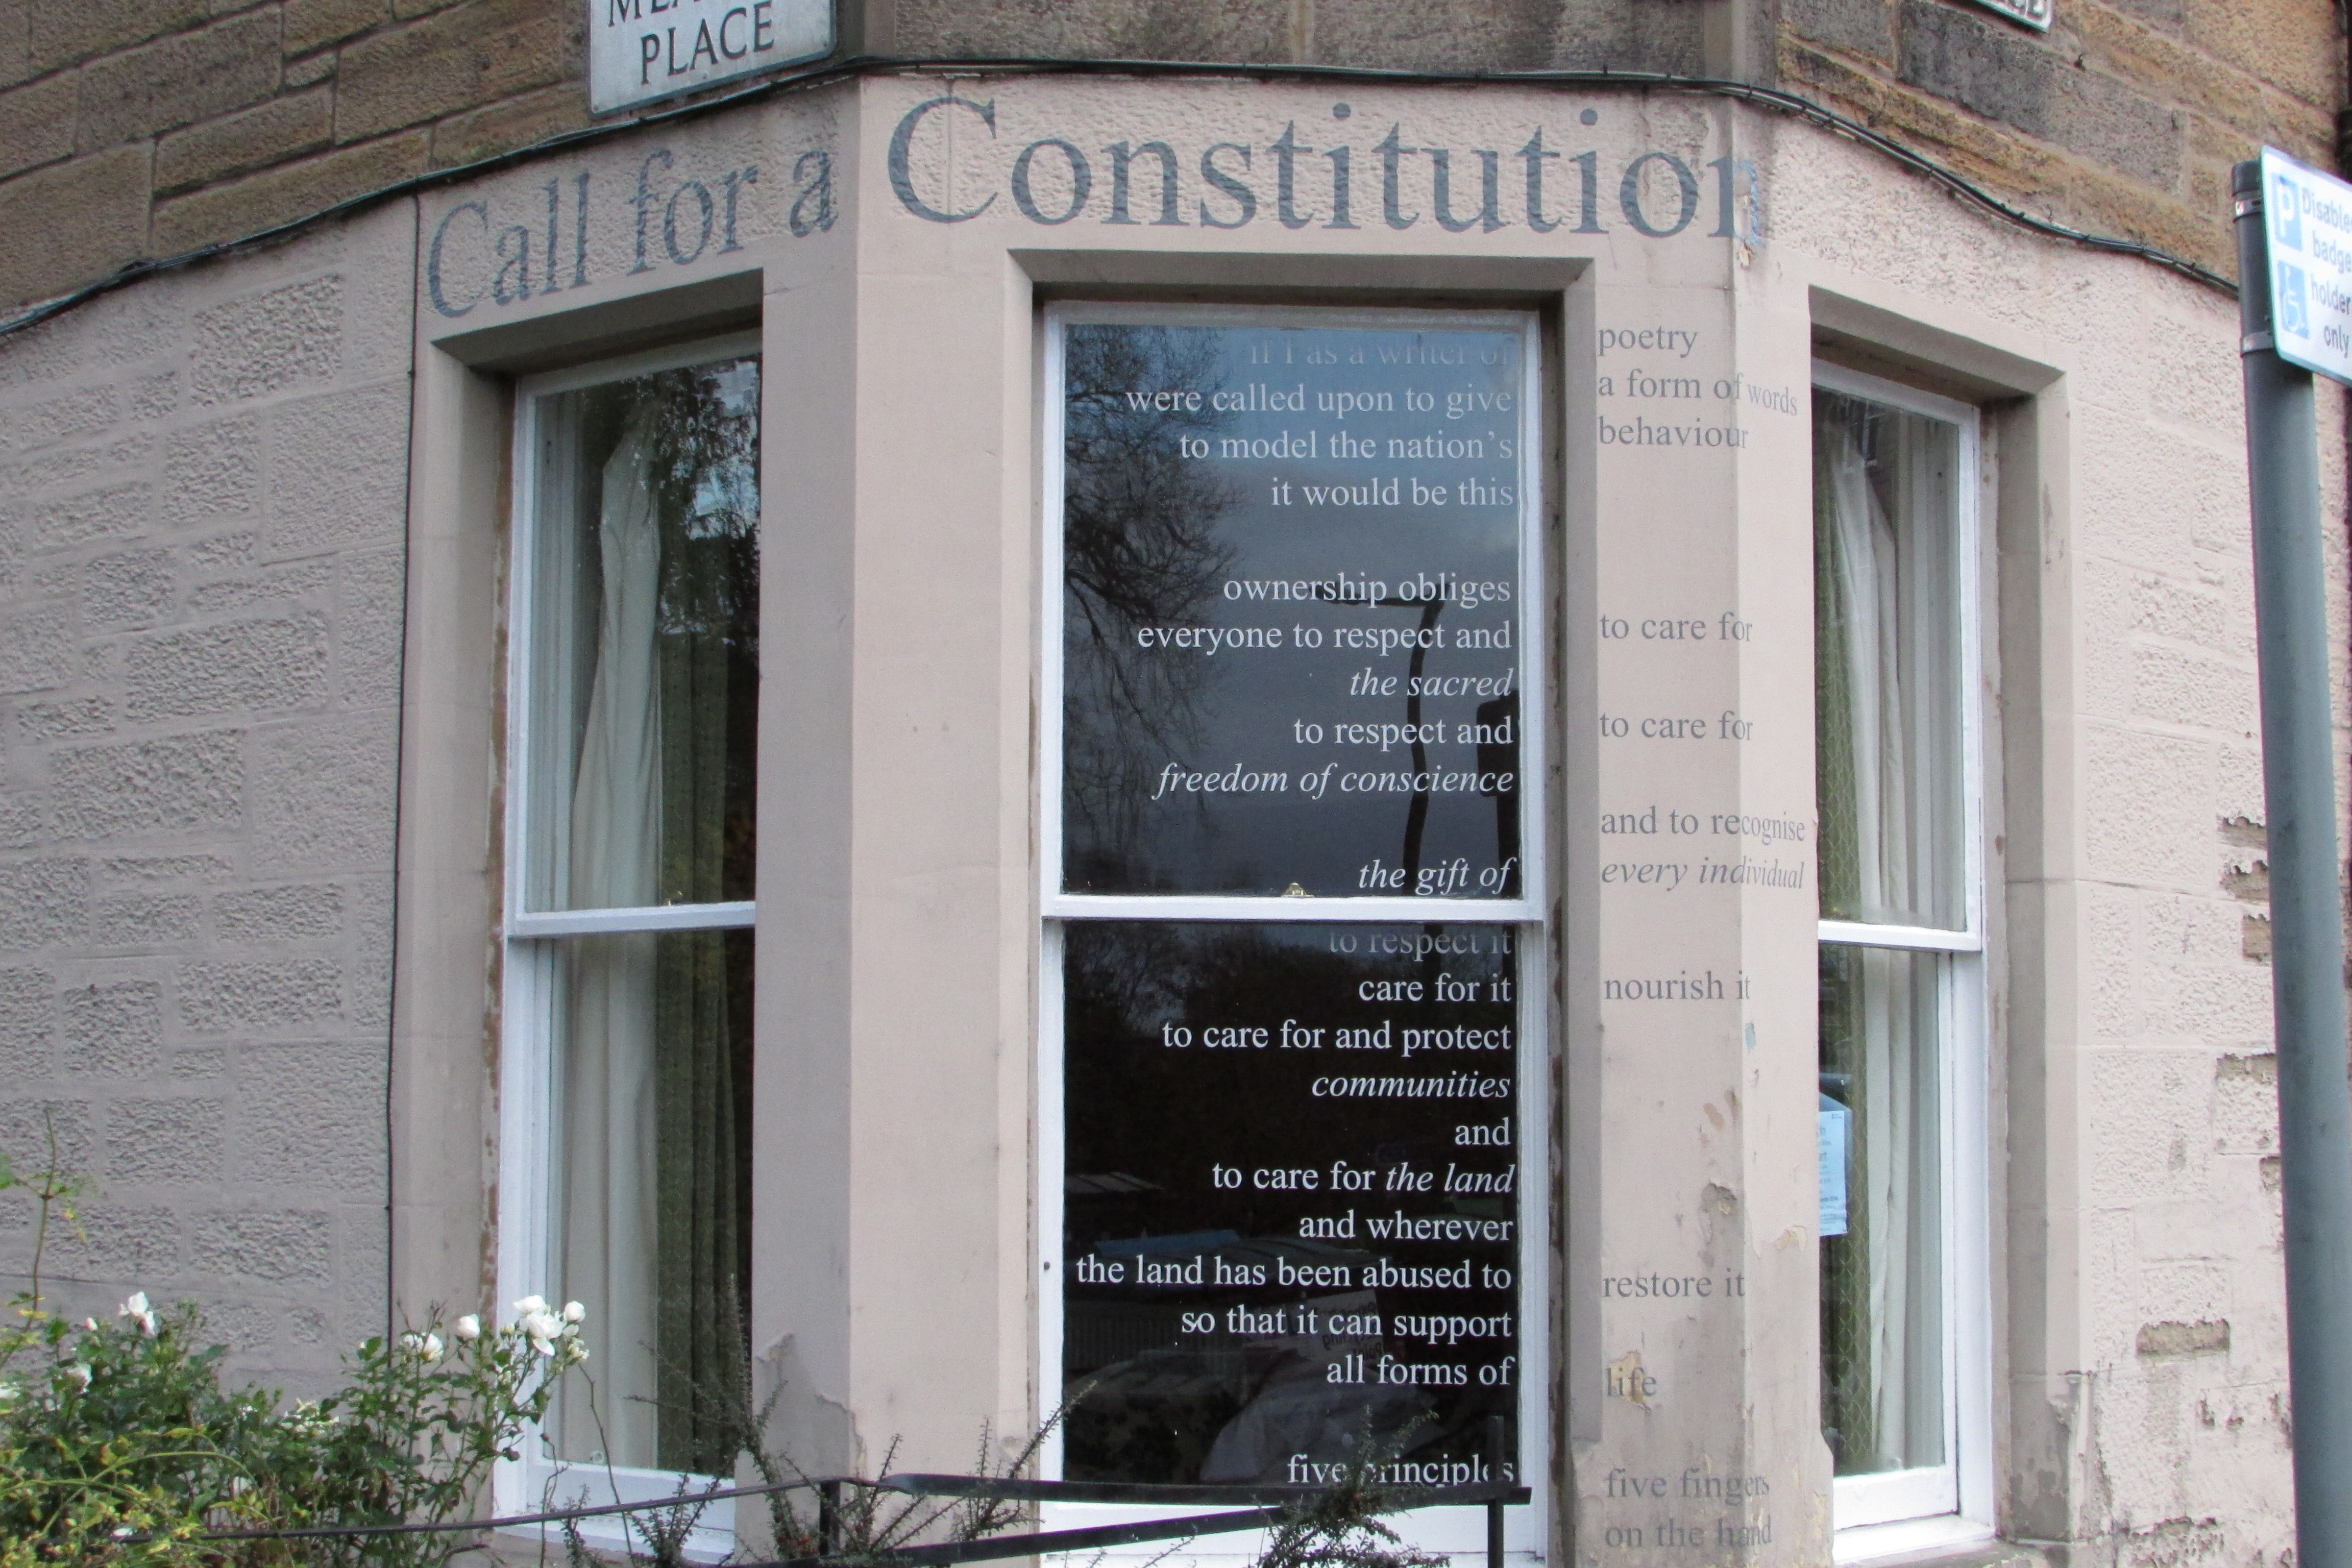 Call for a Constitution